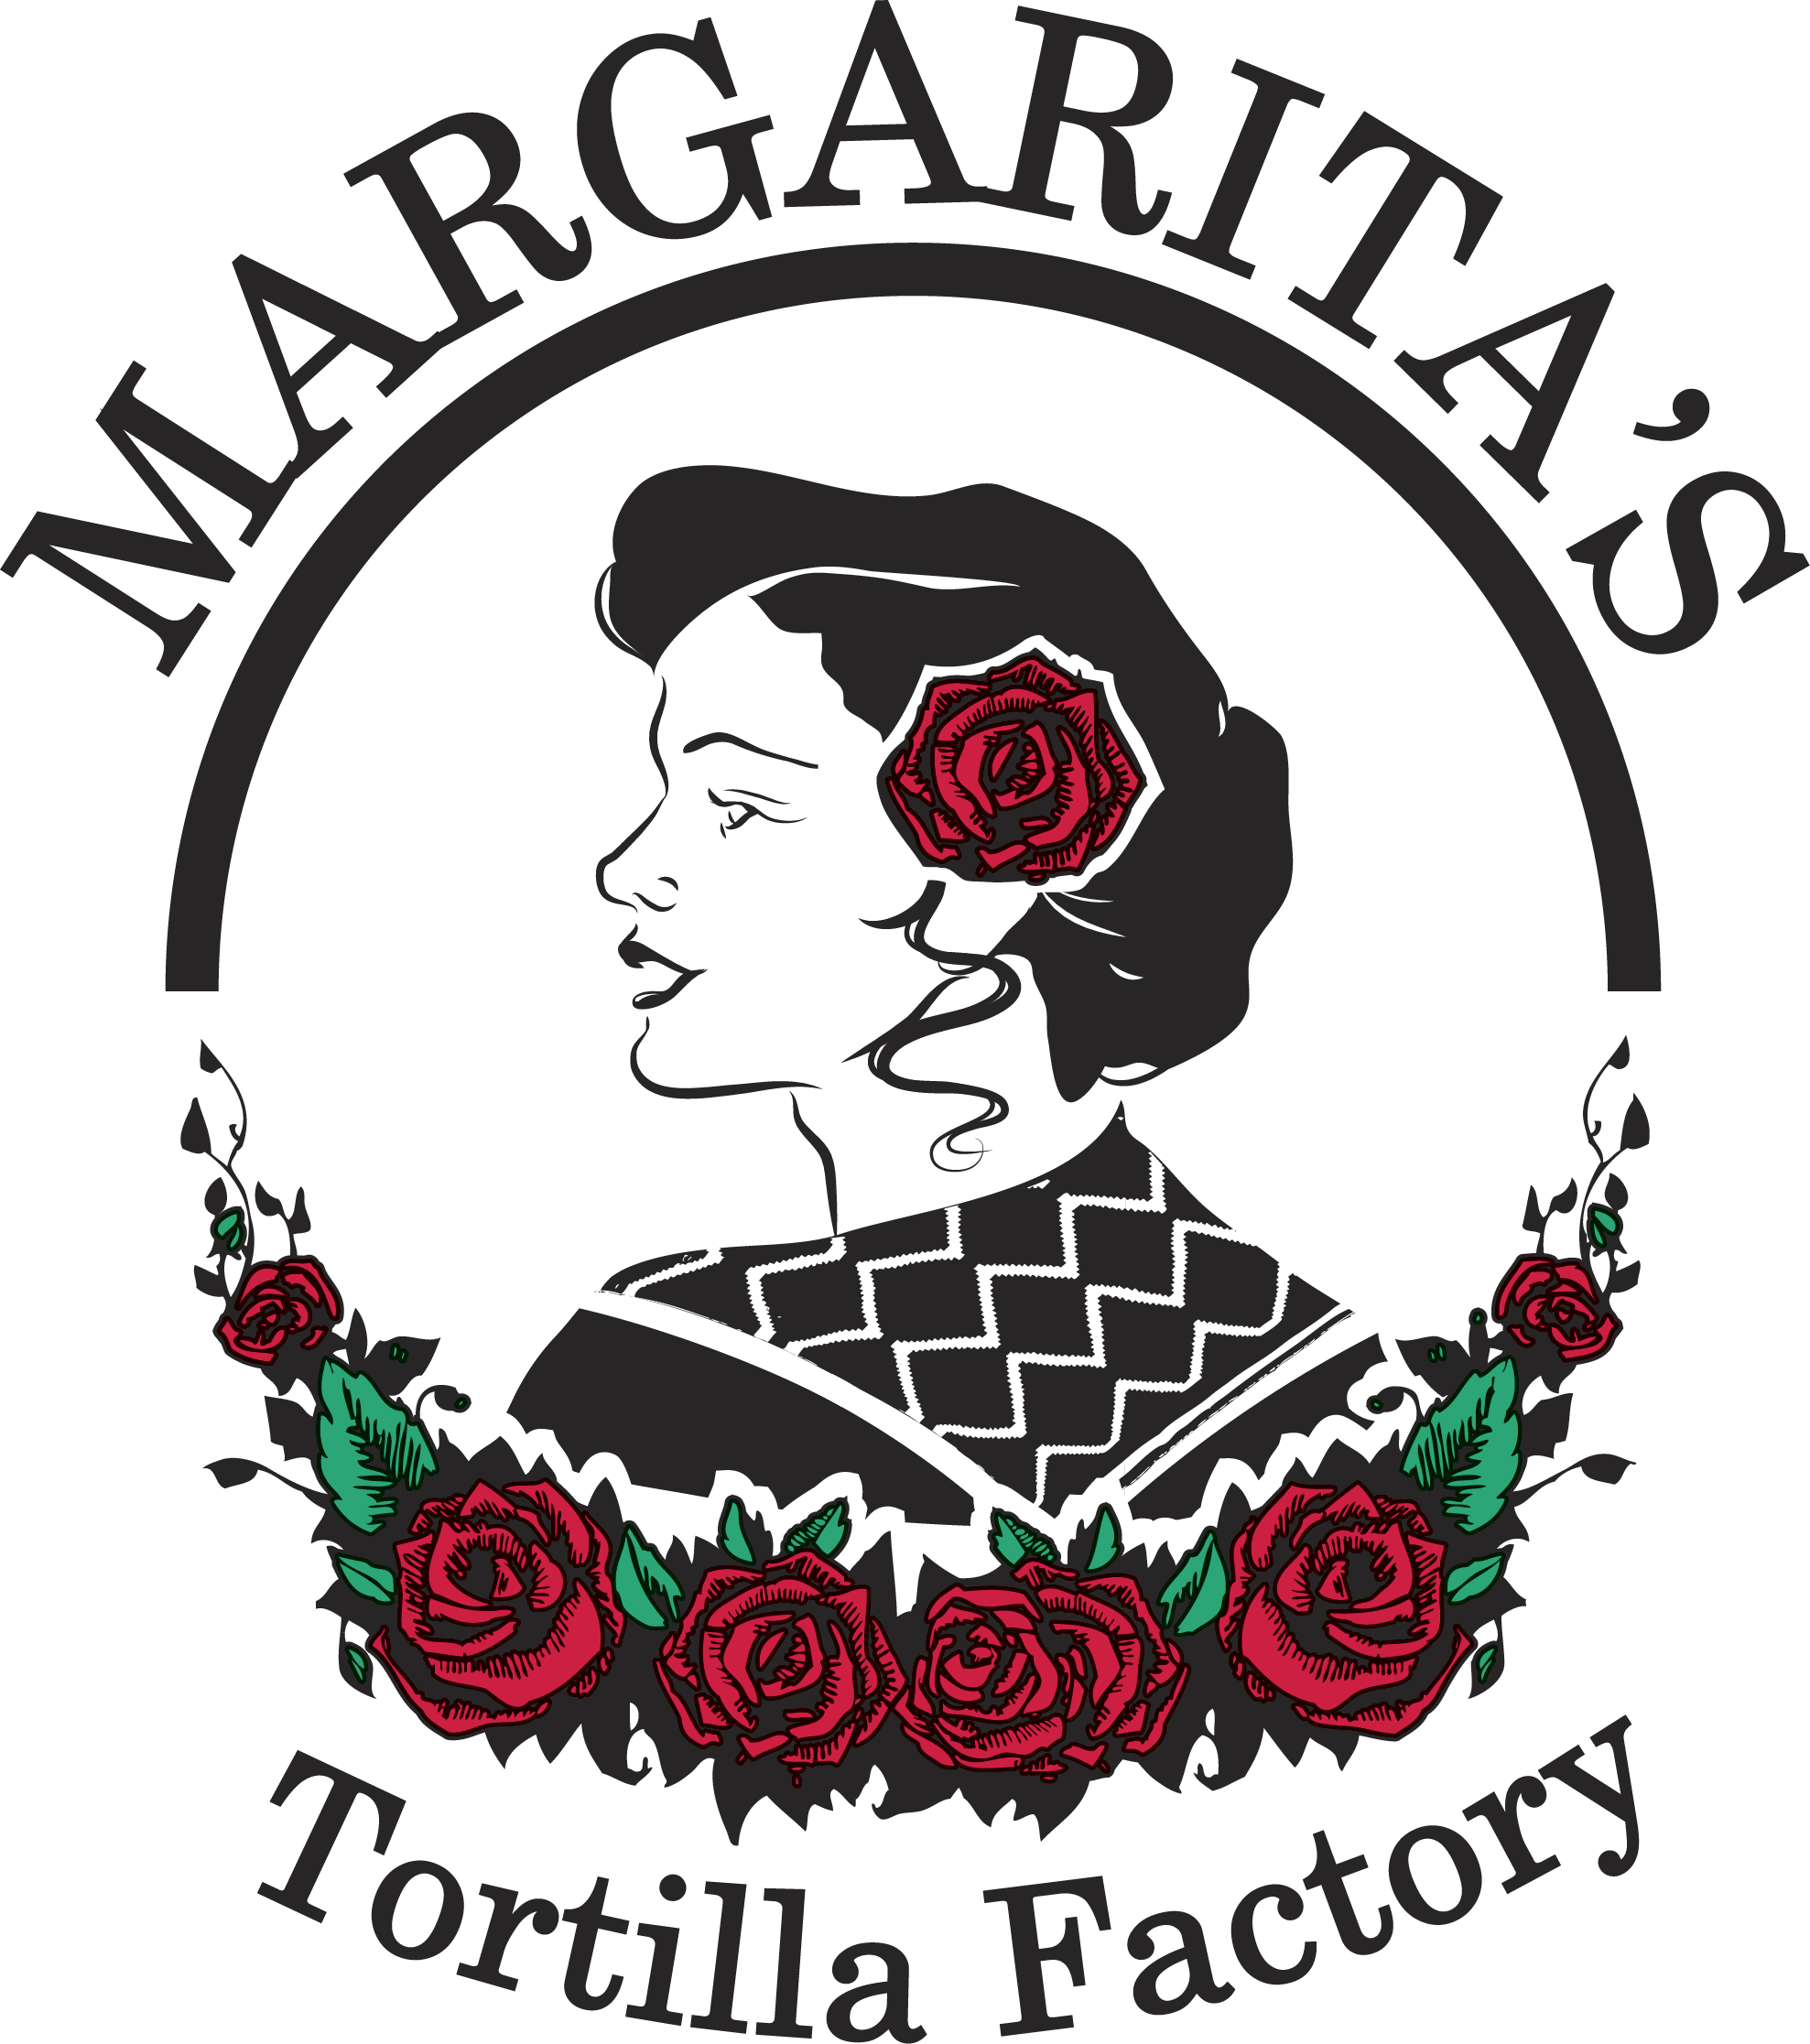 Margarita's Tortilla Factory